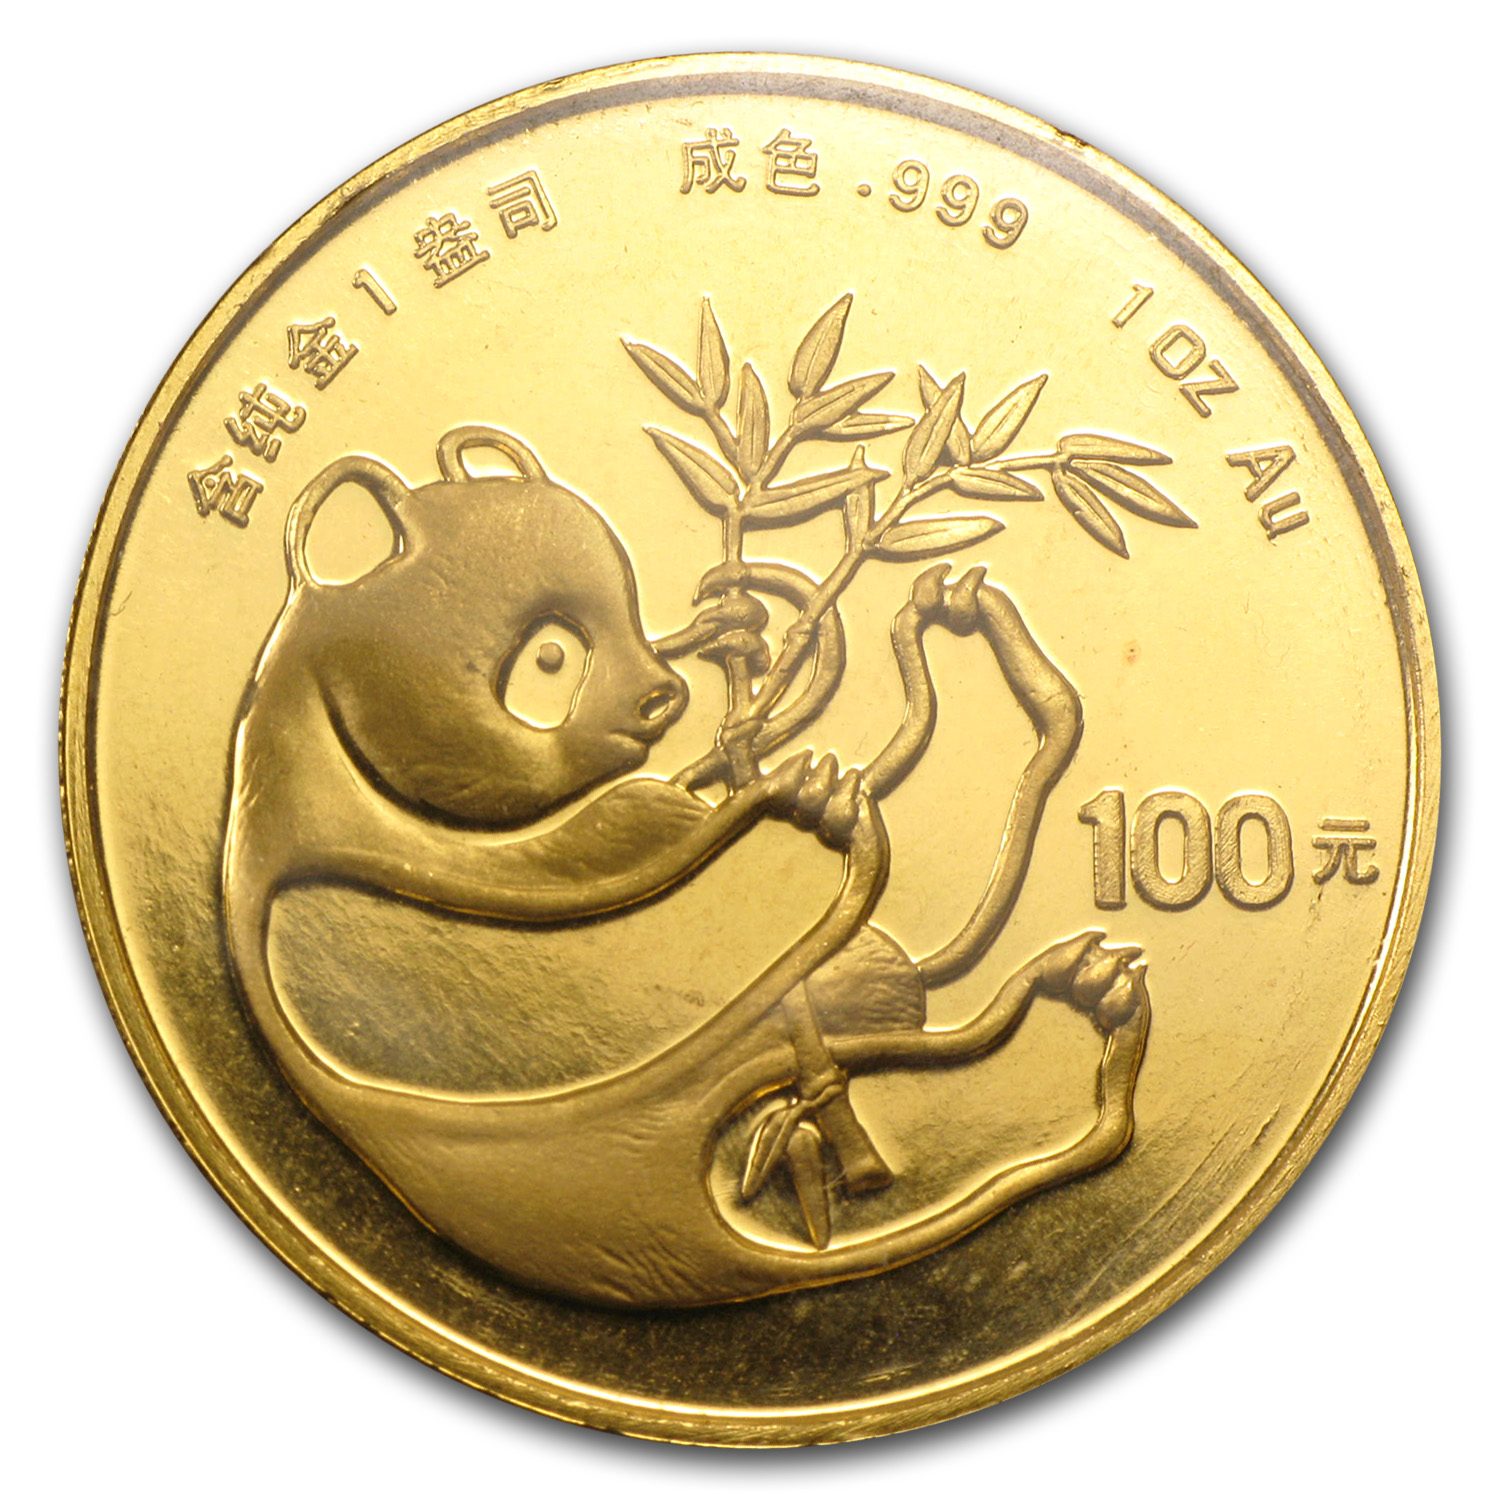 1984 1 oz Gold Chinese Panda BU (Sealed)